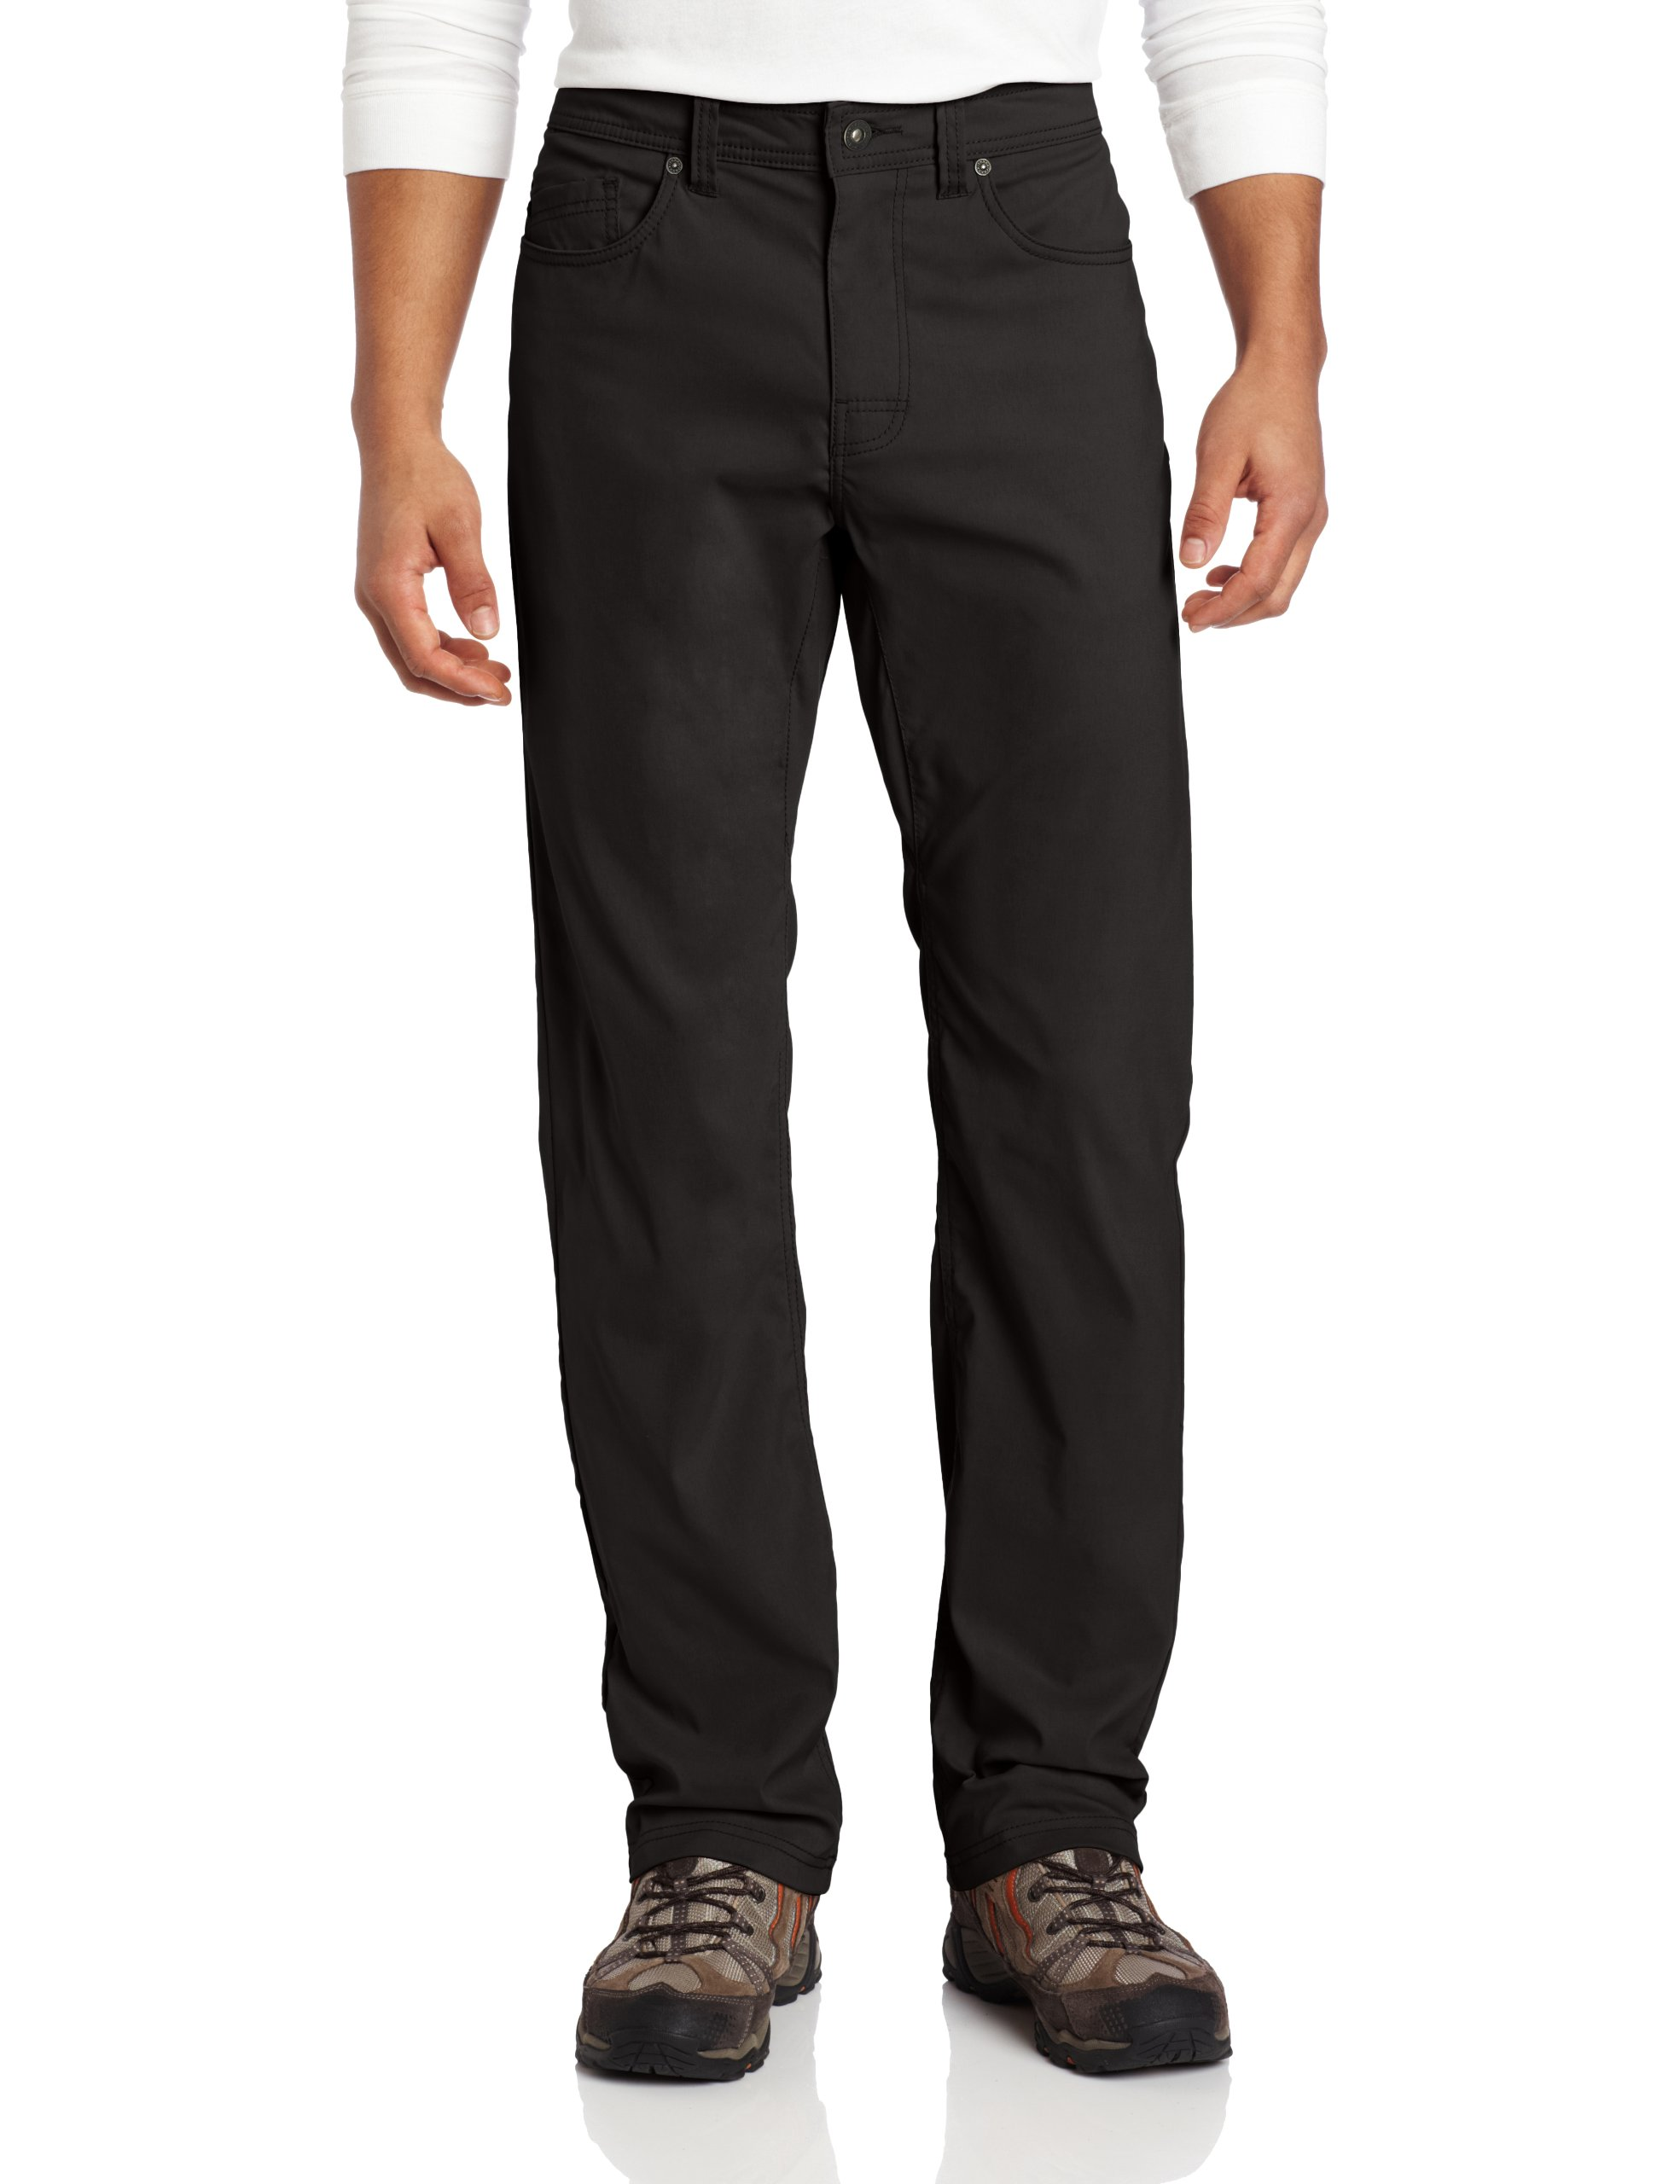 Prana Men's Brion 32-Inch Inseam Pant (Charcoal, 28x32 - inch Inseam)